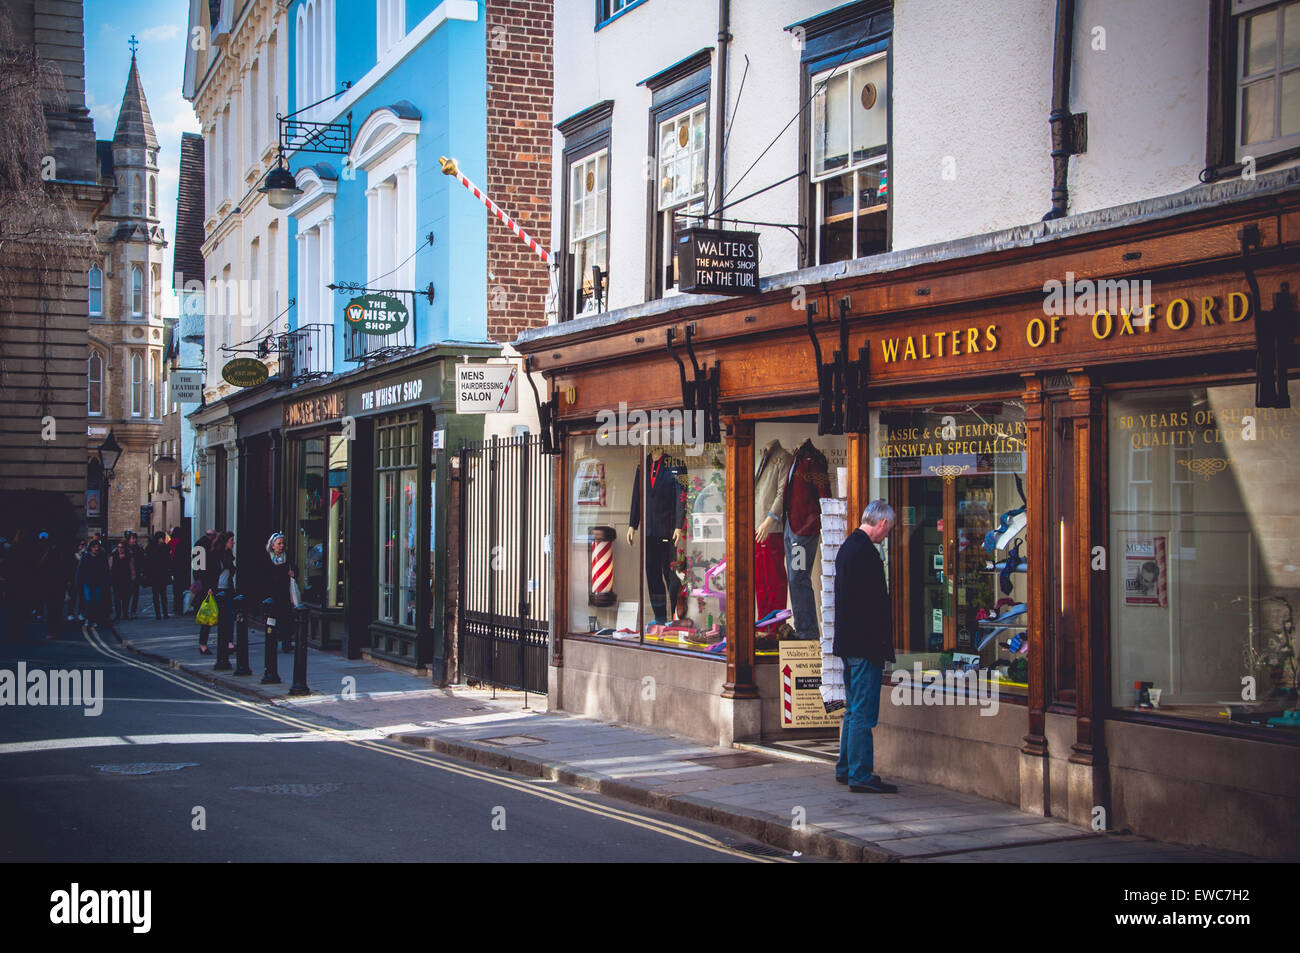 Shops and businesses of Oxford, United Kingdom - Stock Image